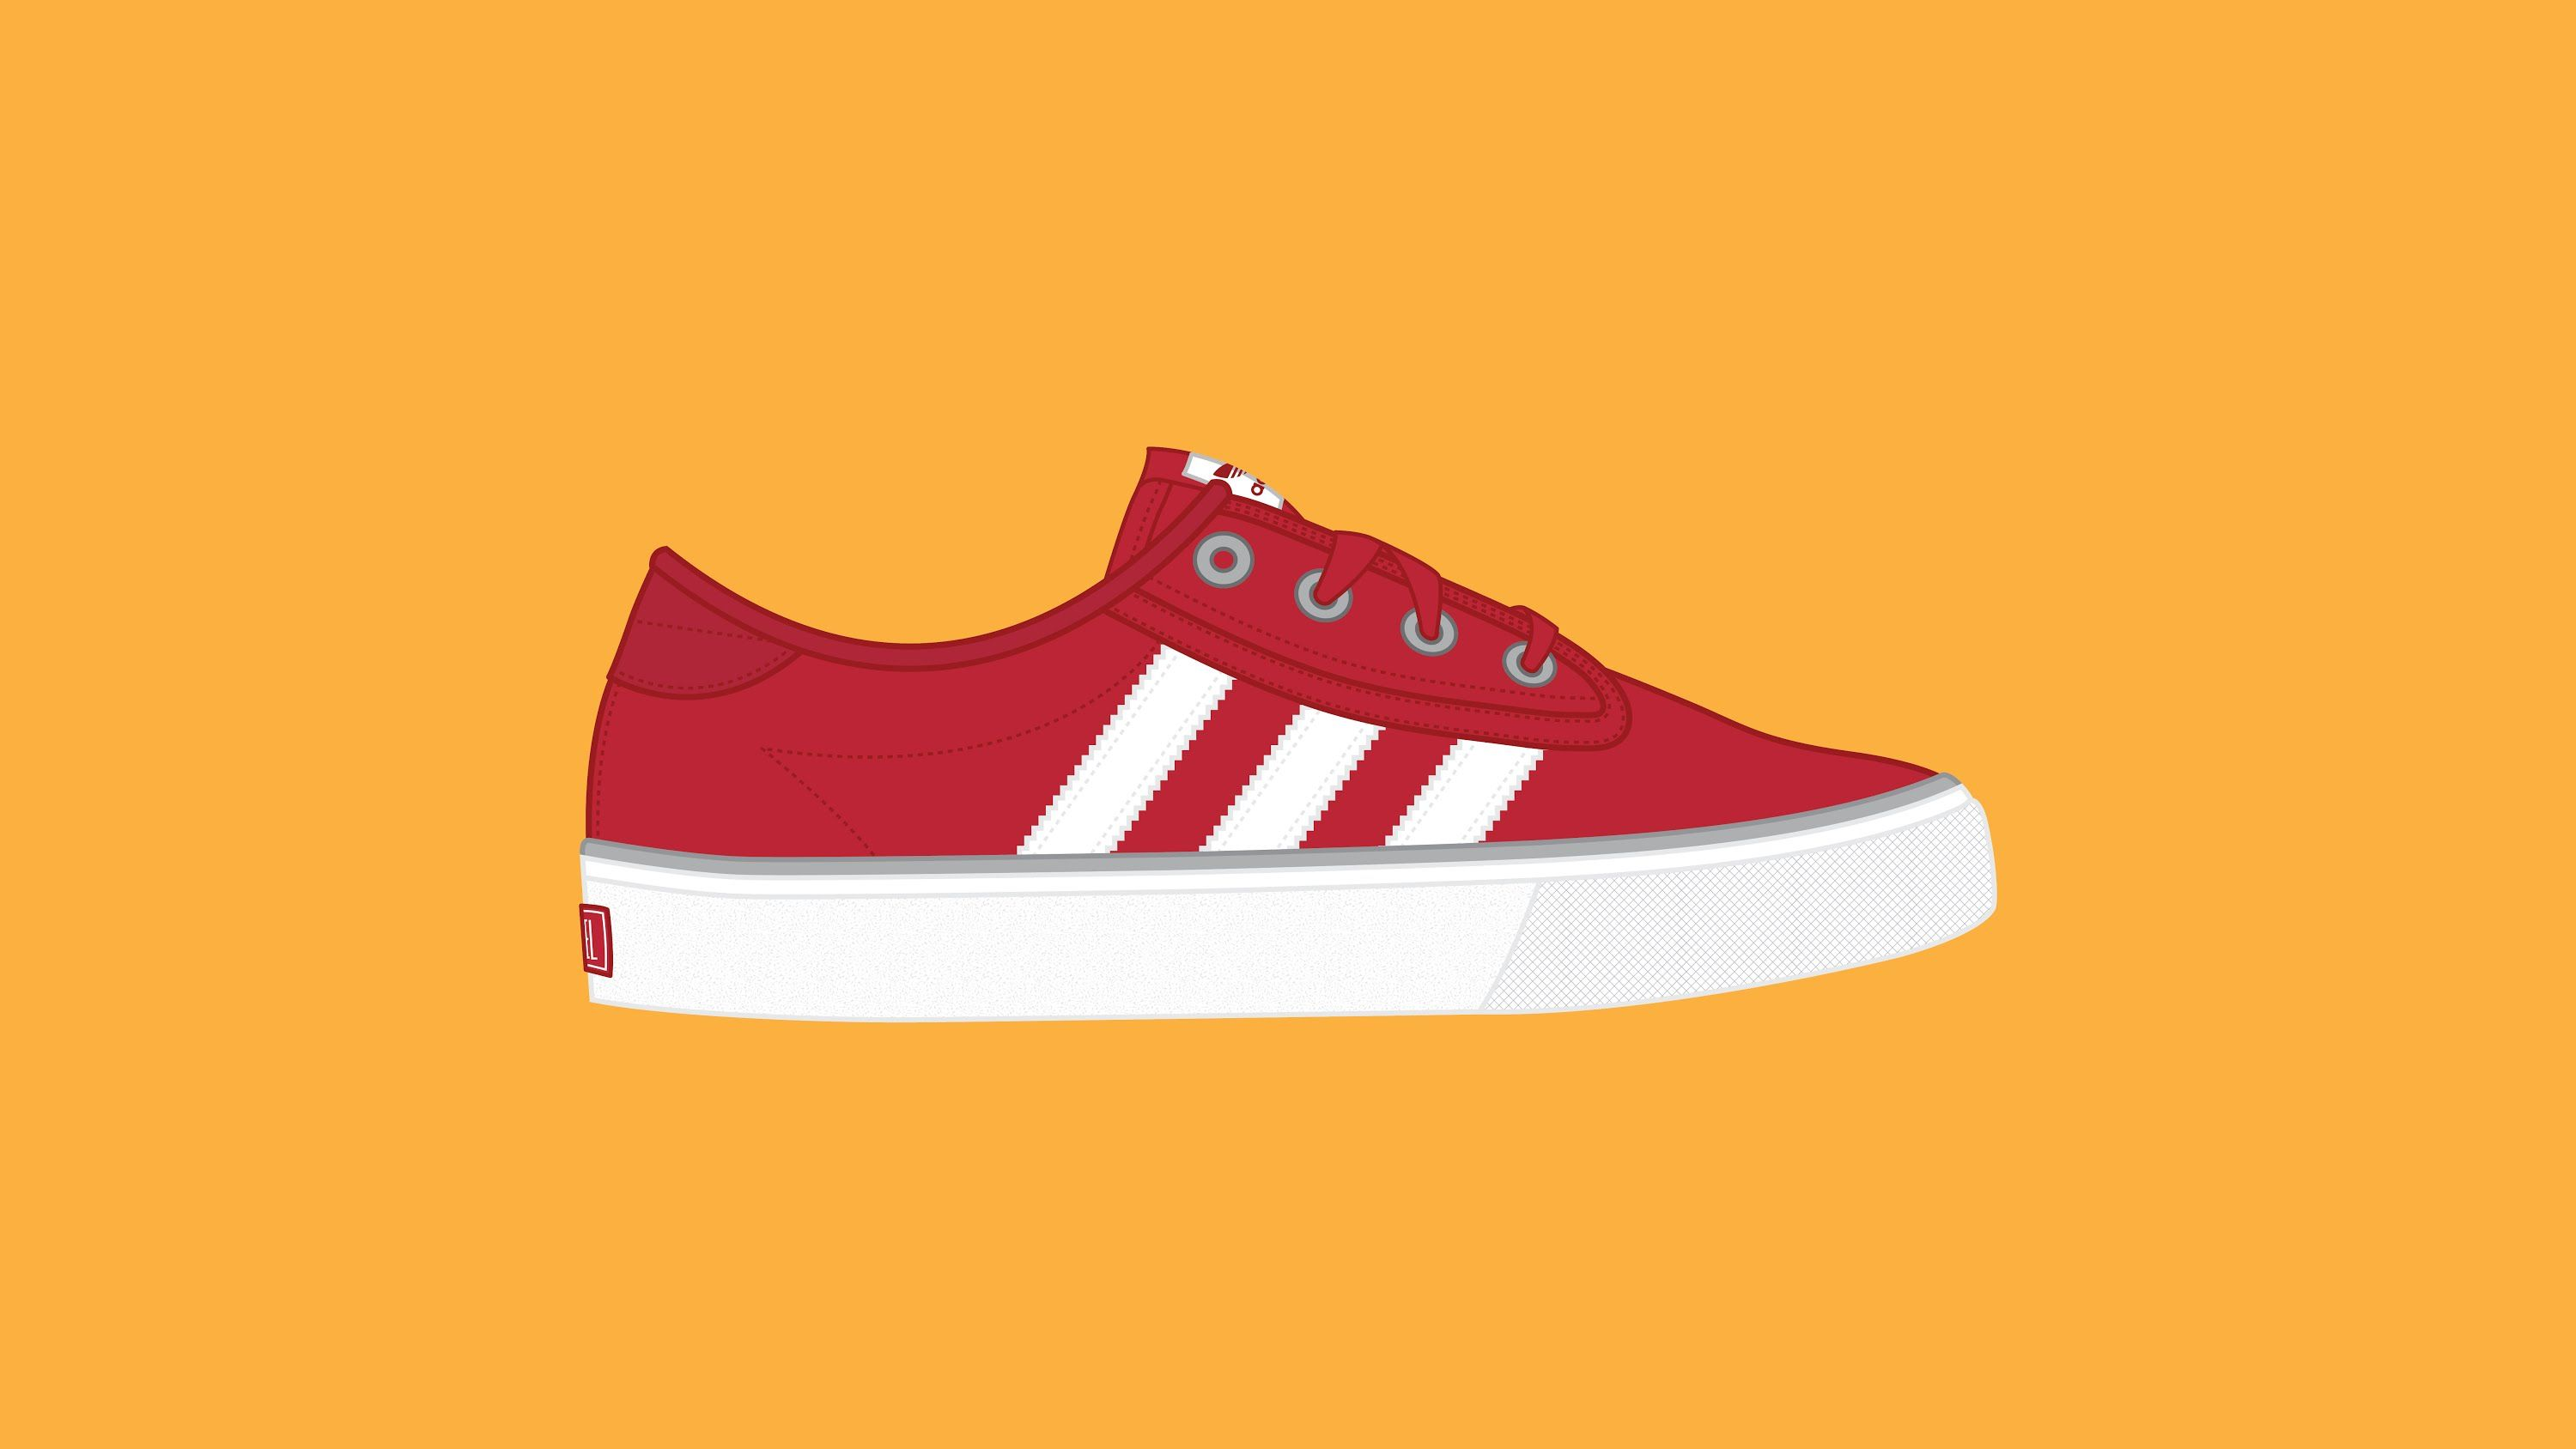 adidas originals illustration - Google Search